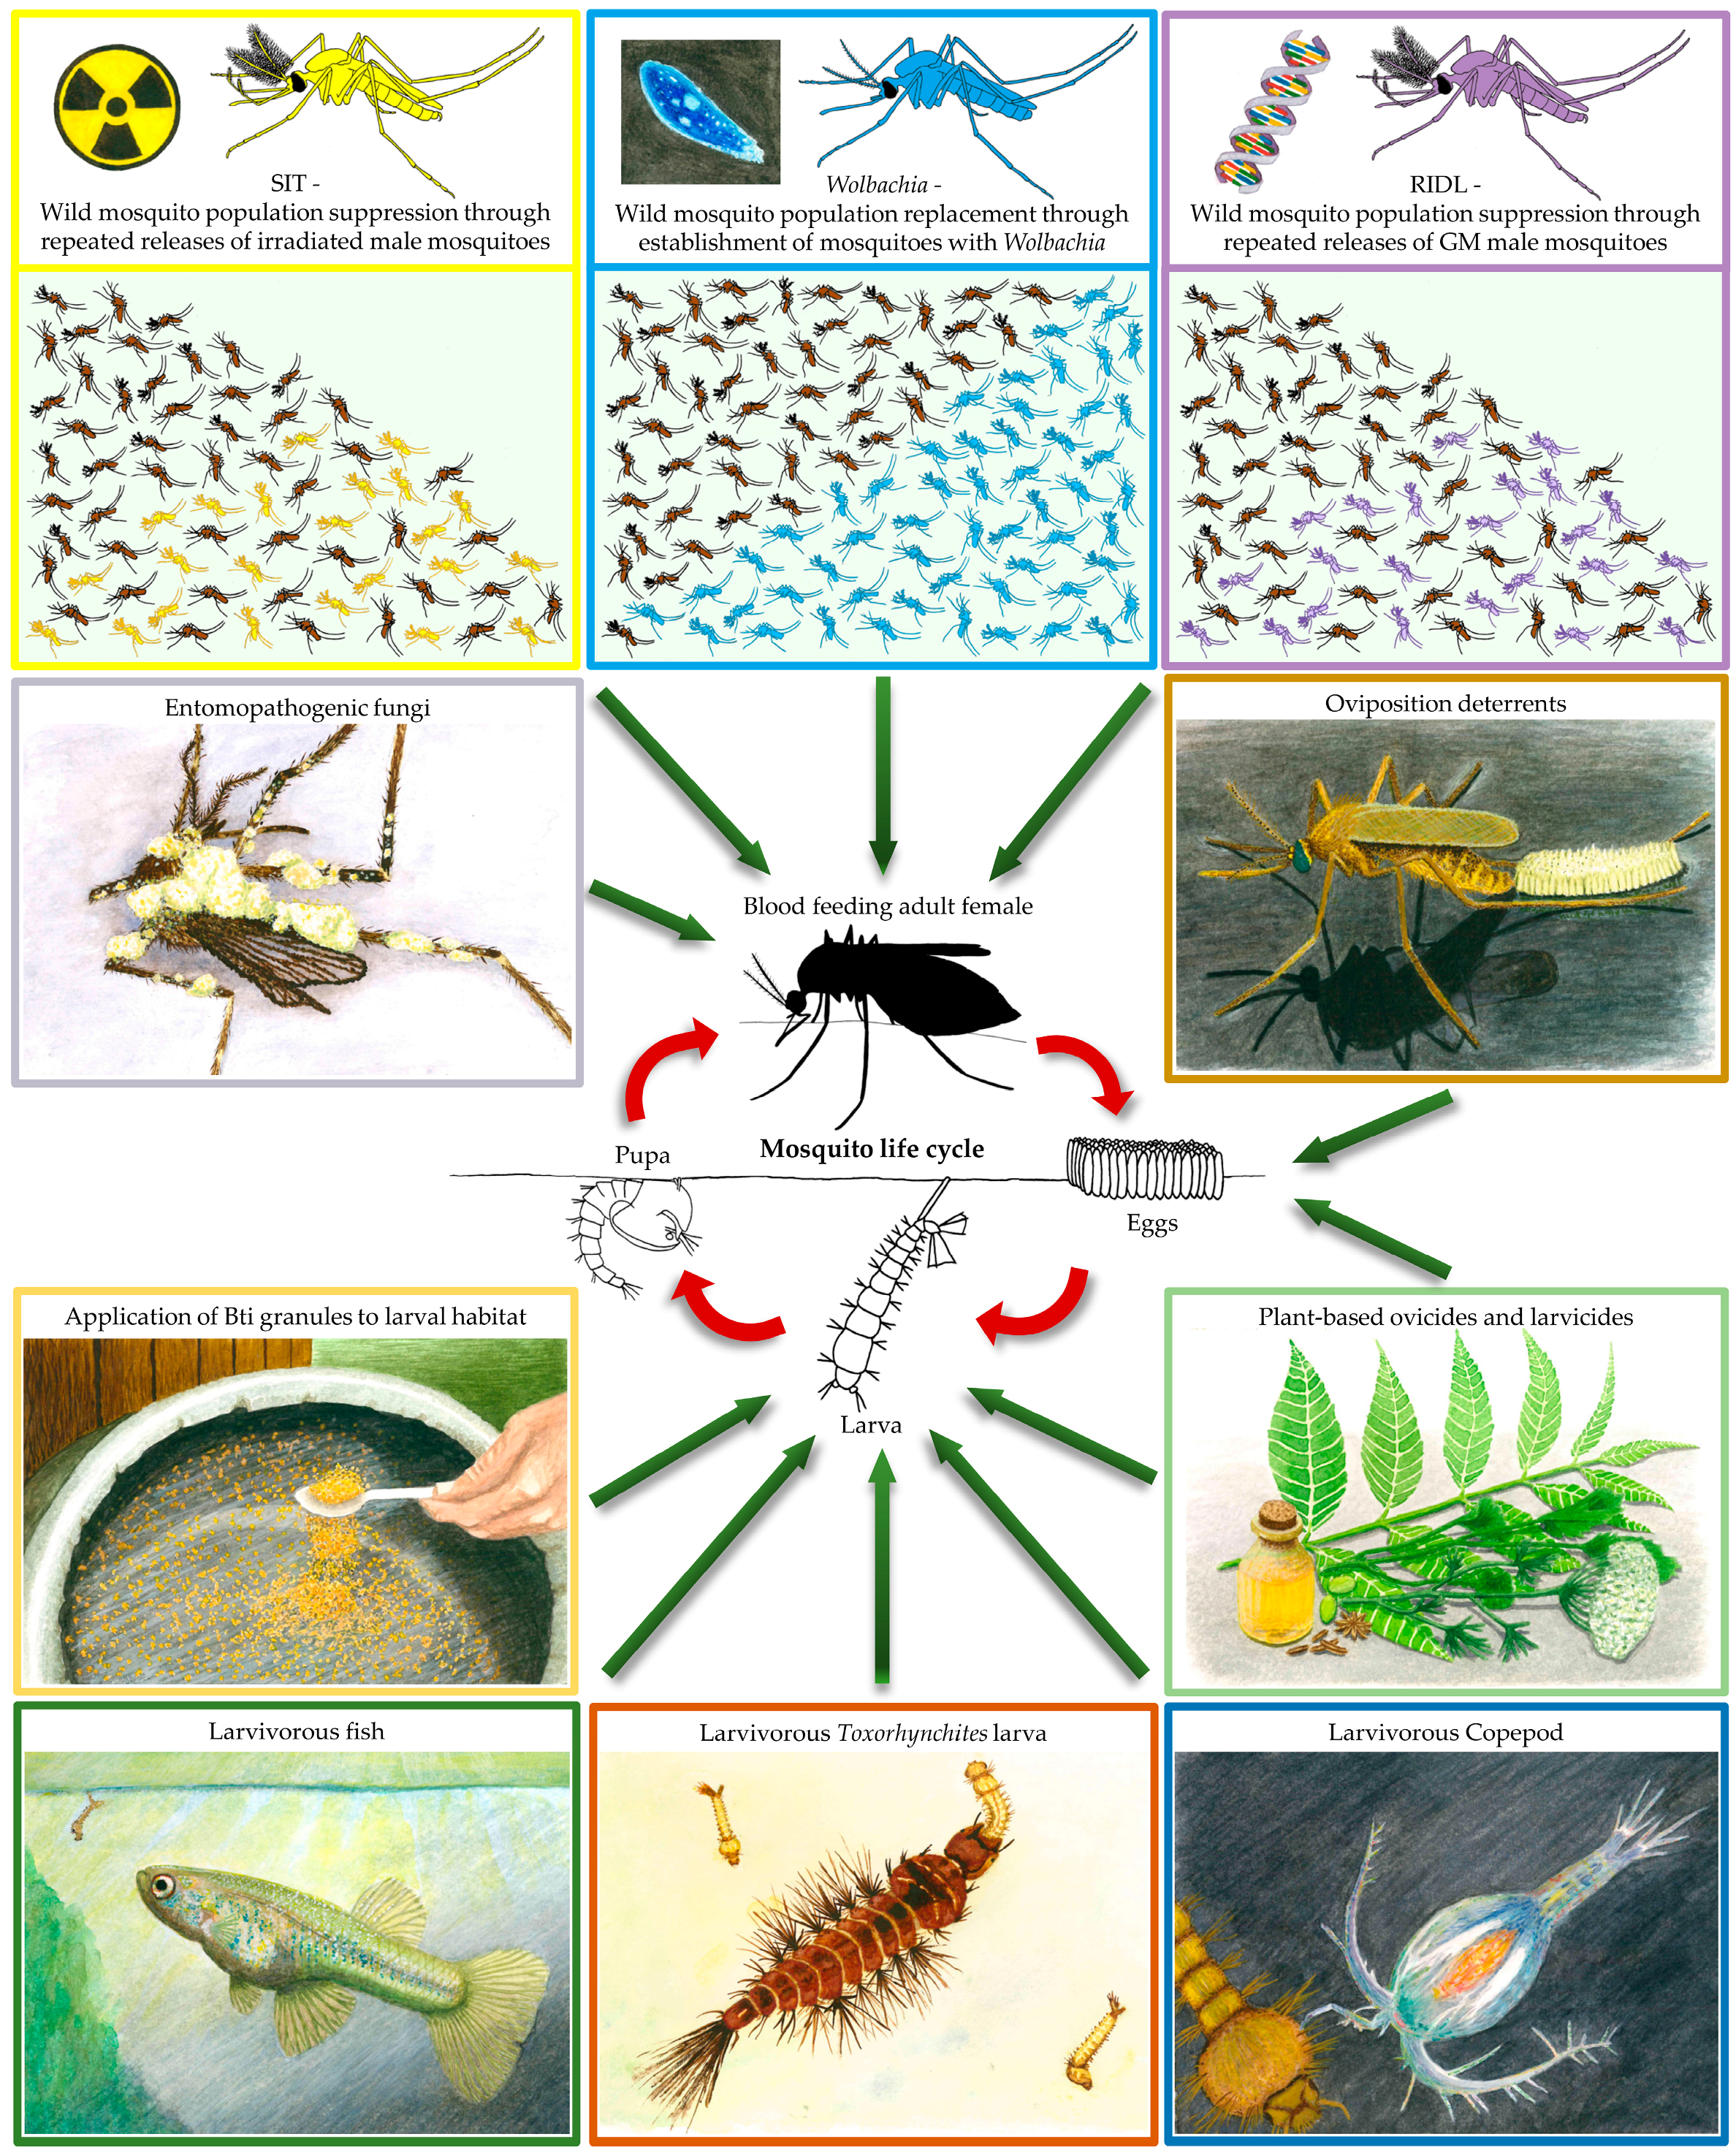 insects | free full-text | biological control of mosquito vectors: past,  present, and future  mdpi